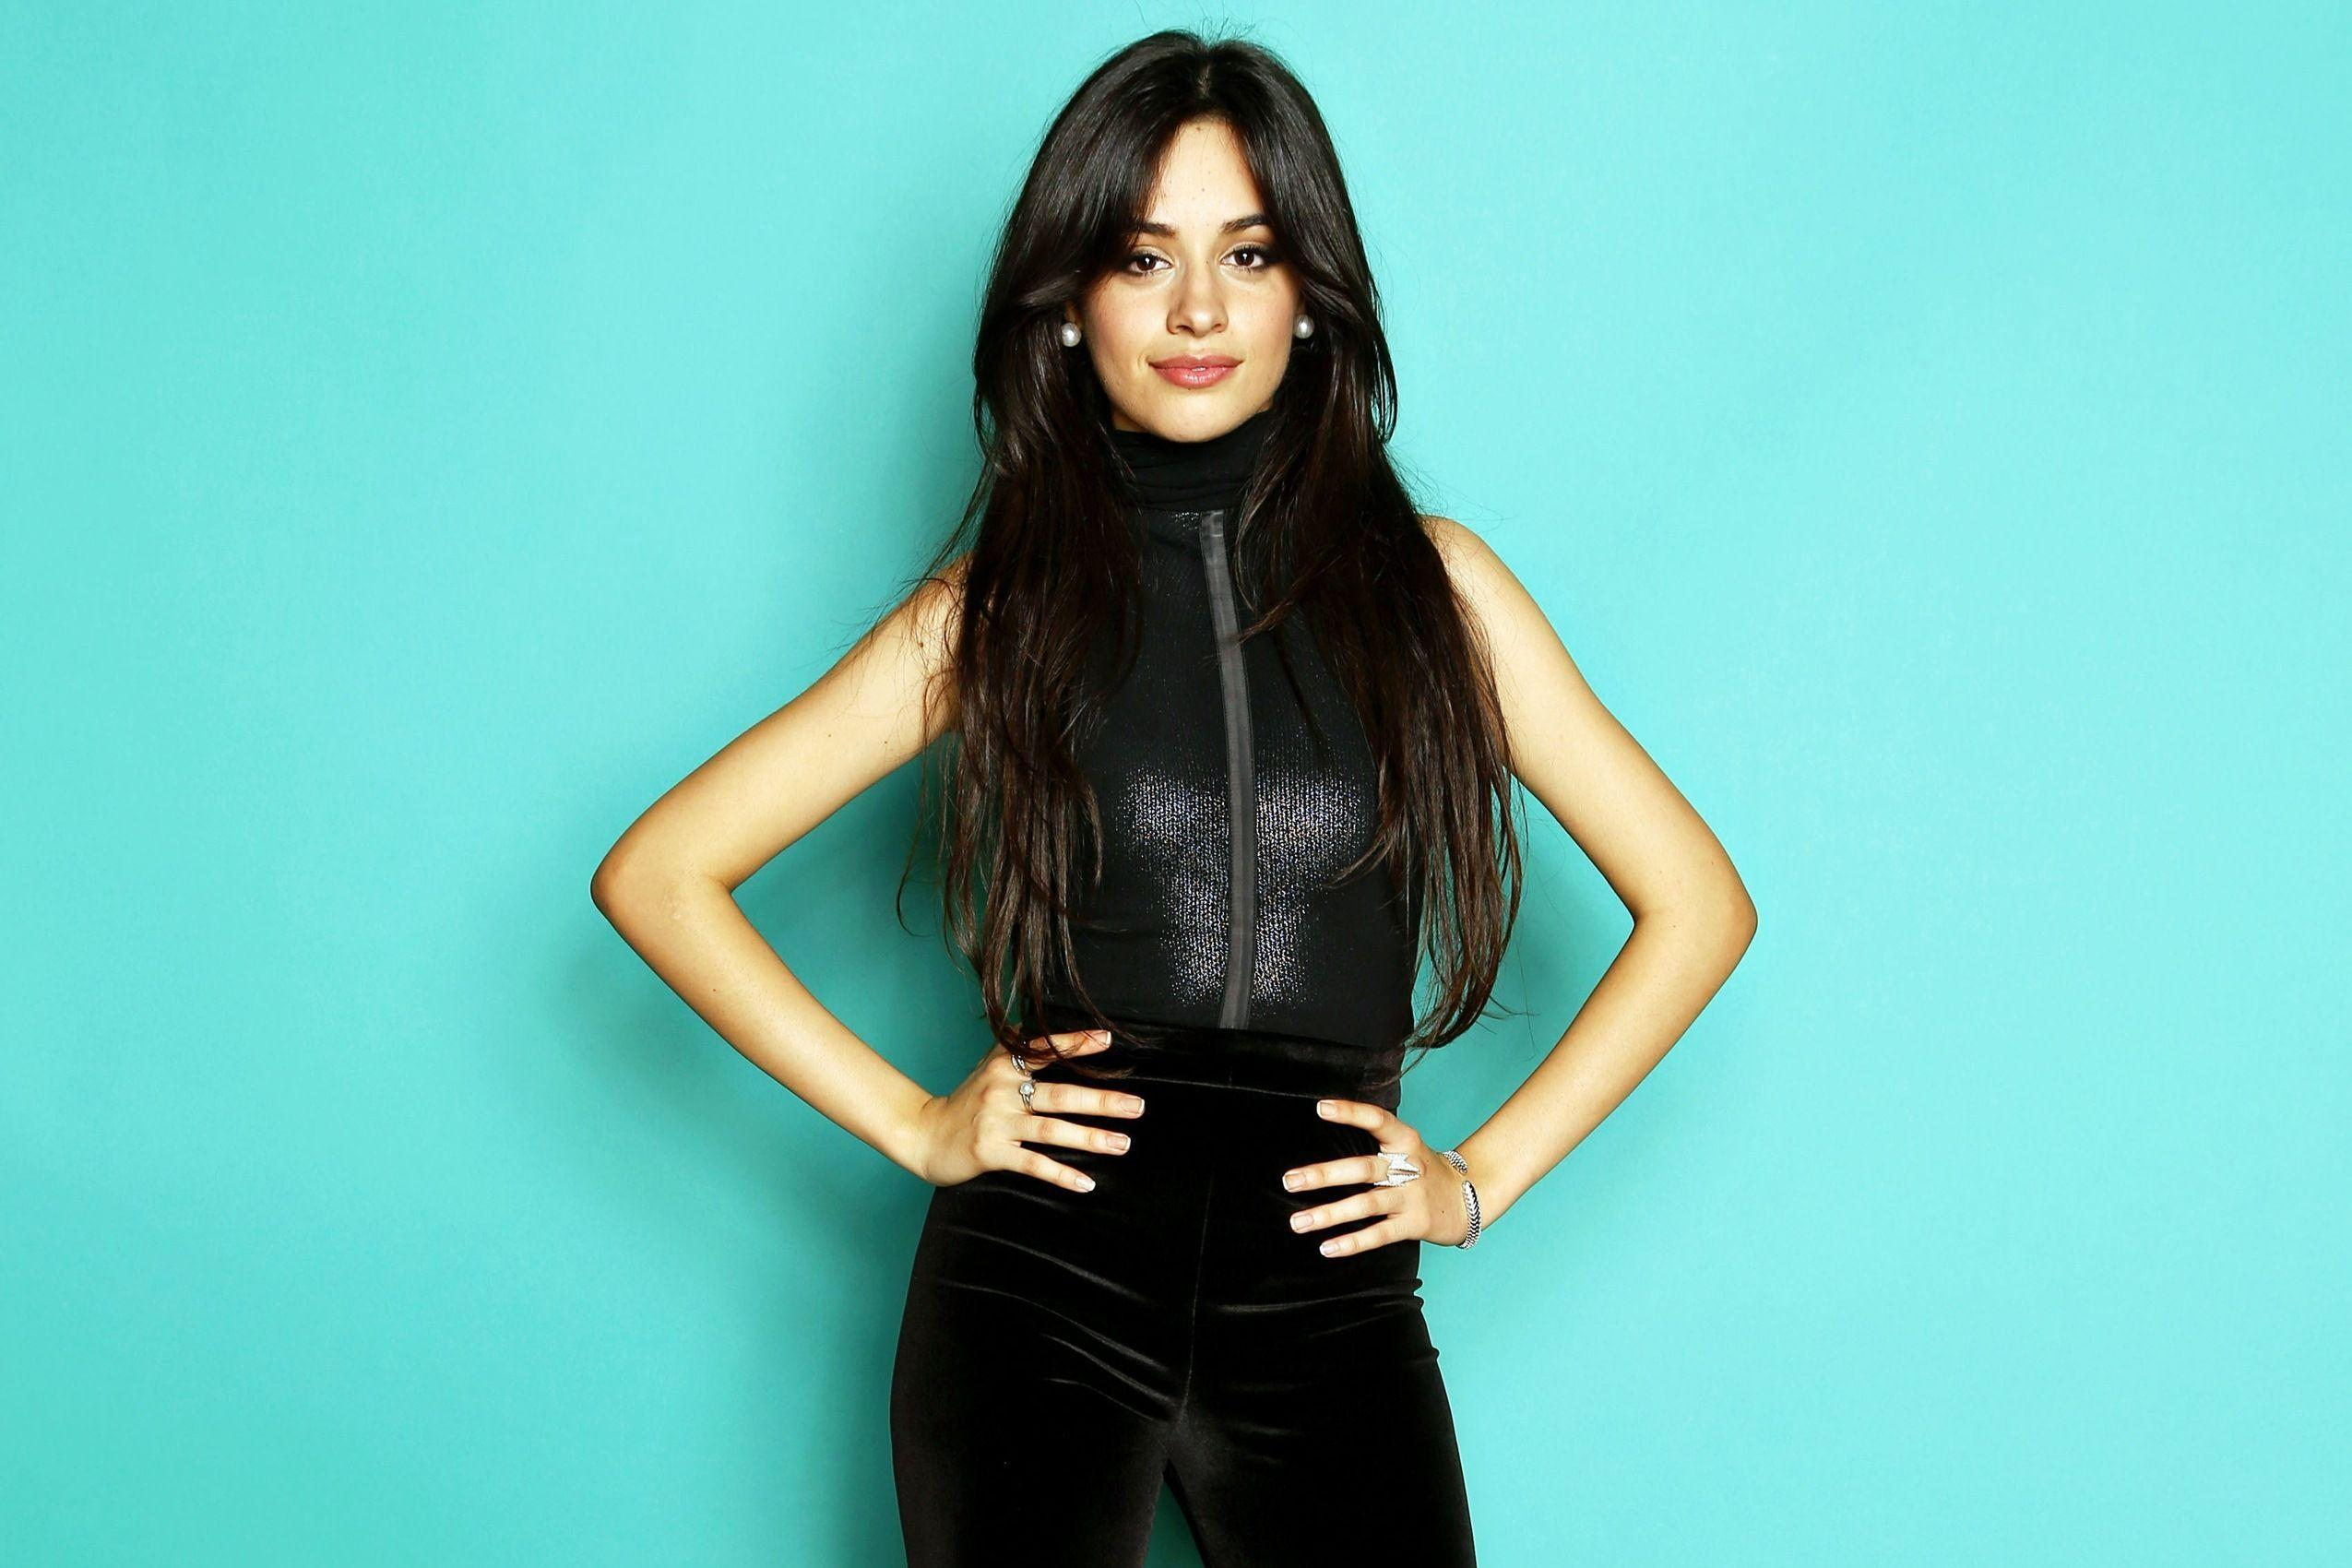 Camila Cabello Wallpapers - Wallpaper Cave